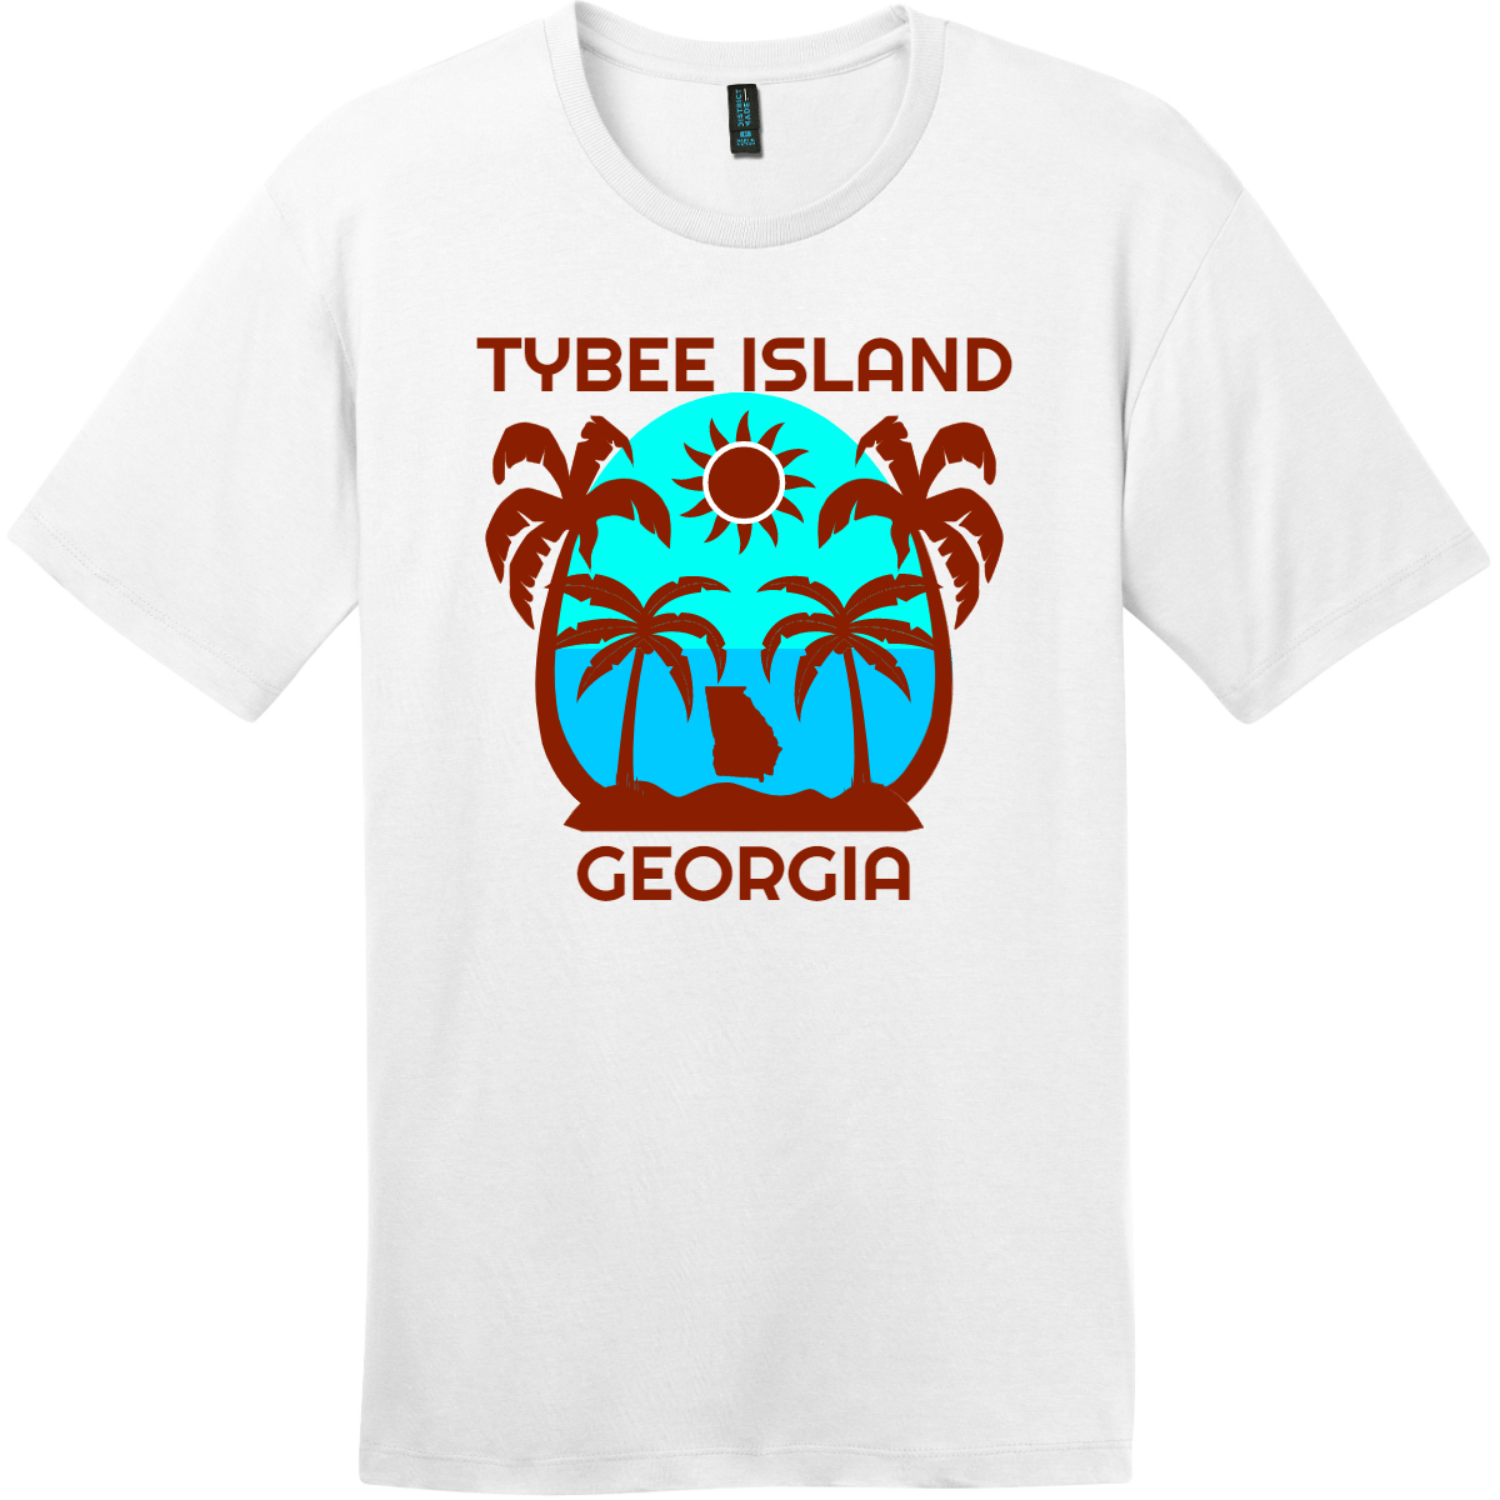 Tybee Island Georgia Palm Tree T-Shirt Bright White District Perfect Weight Tee DT104